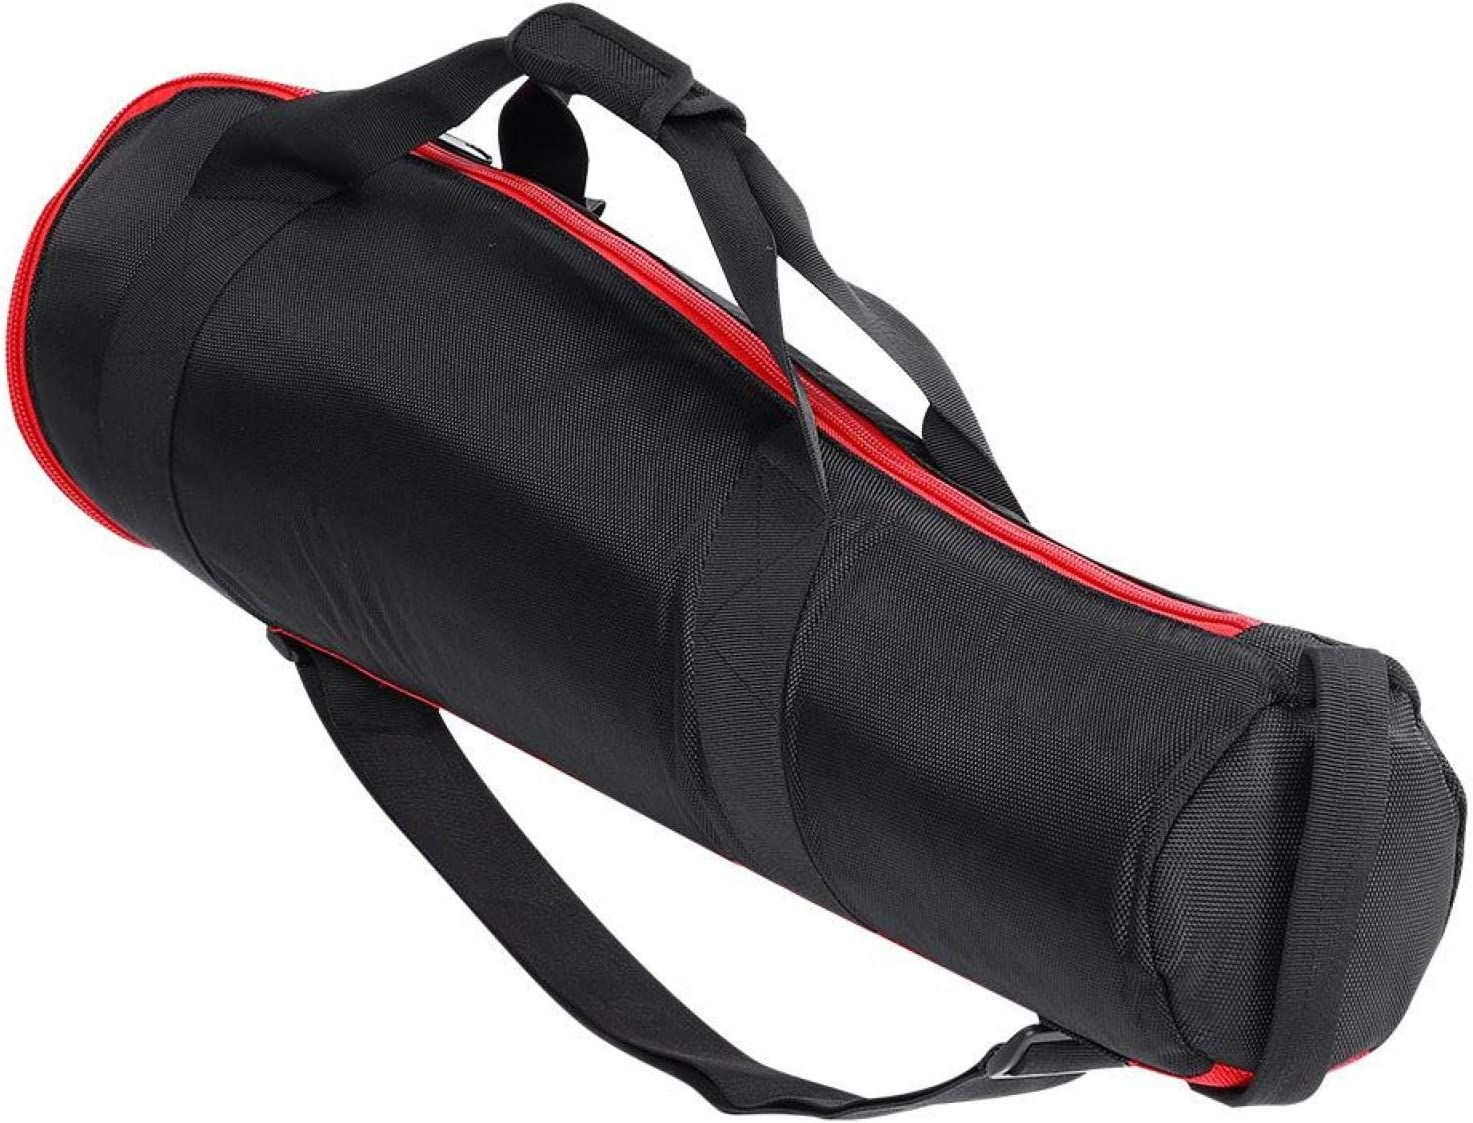 Monopod Bag Hand Very popular Lightweight Outdo Las Vegas Mall and for Portable